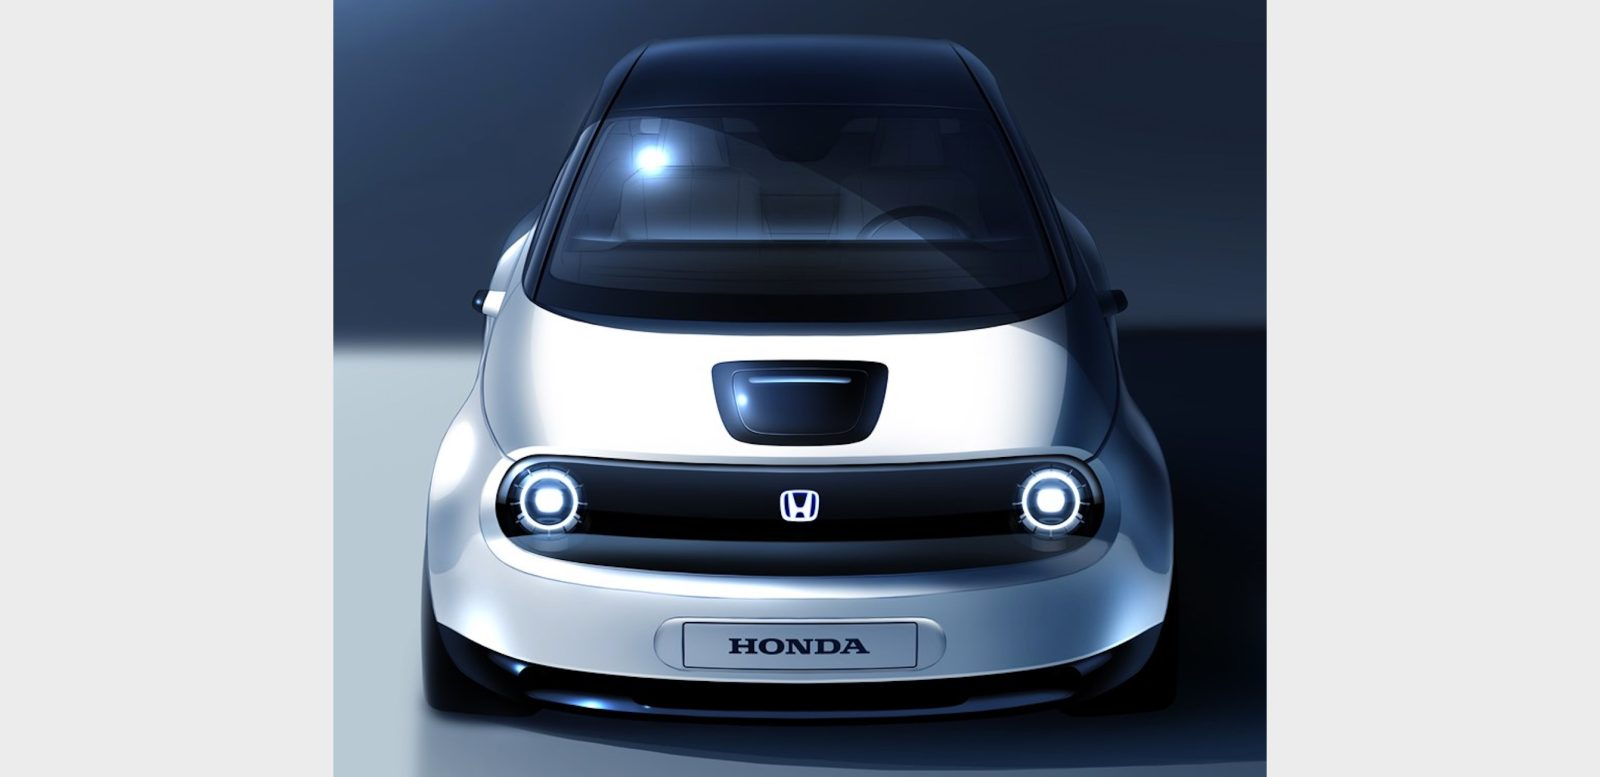 Honda shows new electric prototype, says 'mass production version